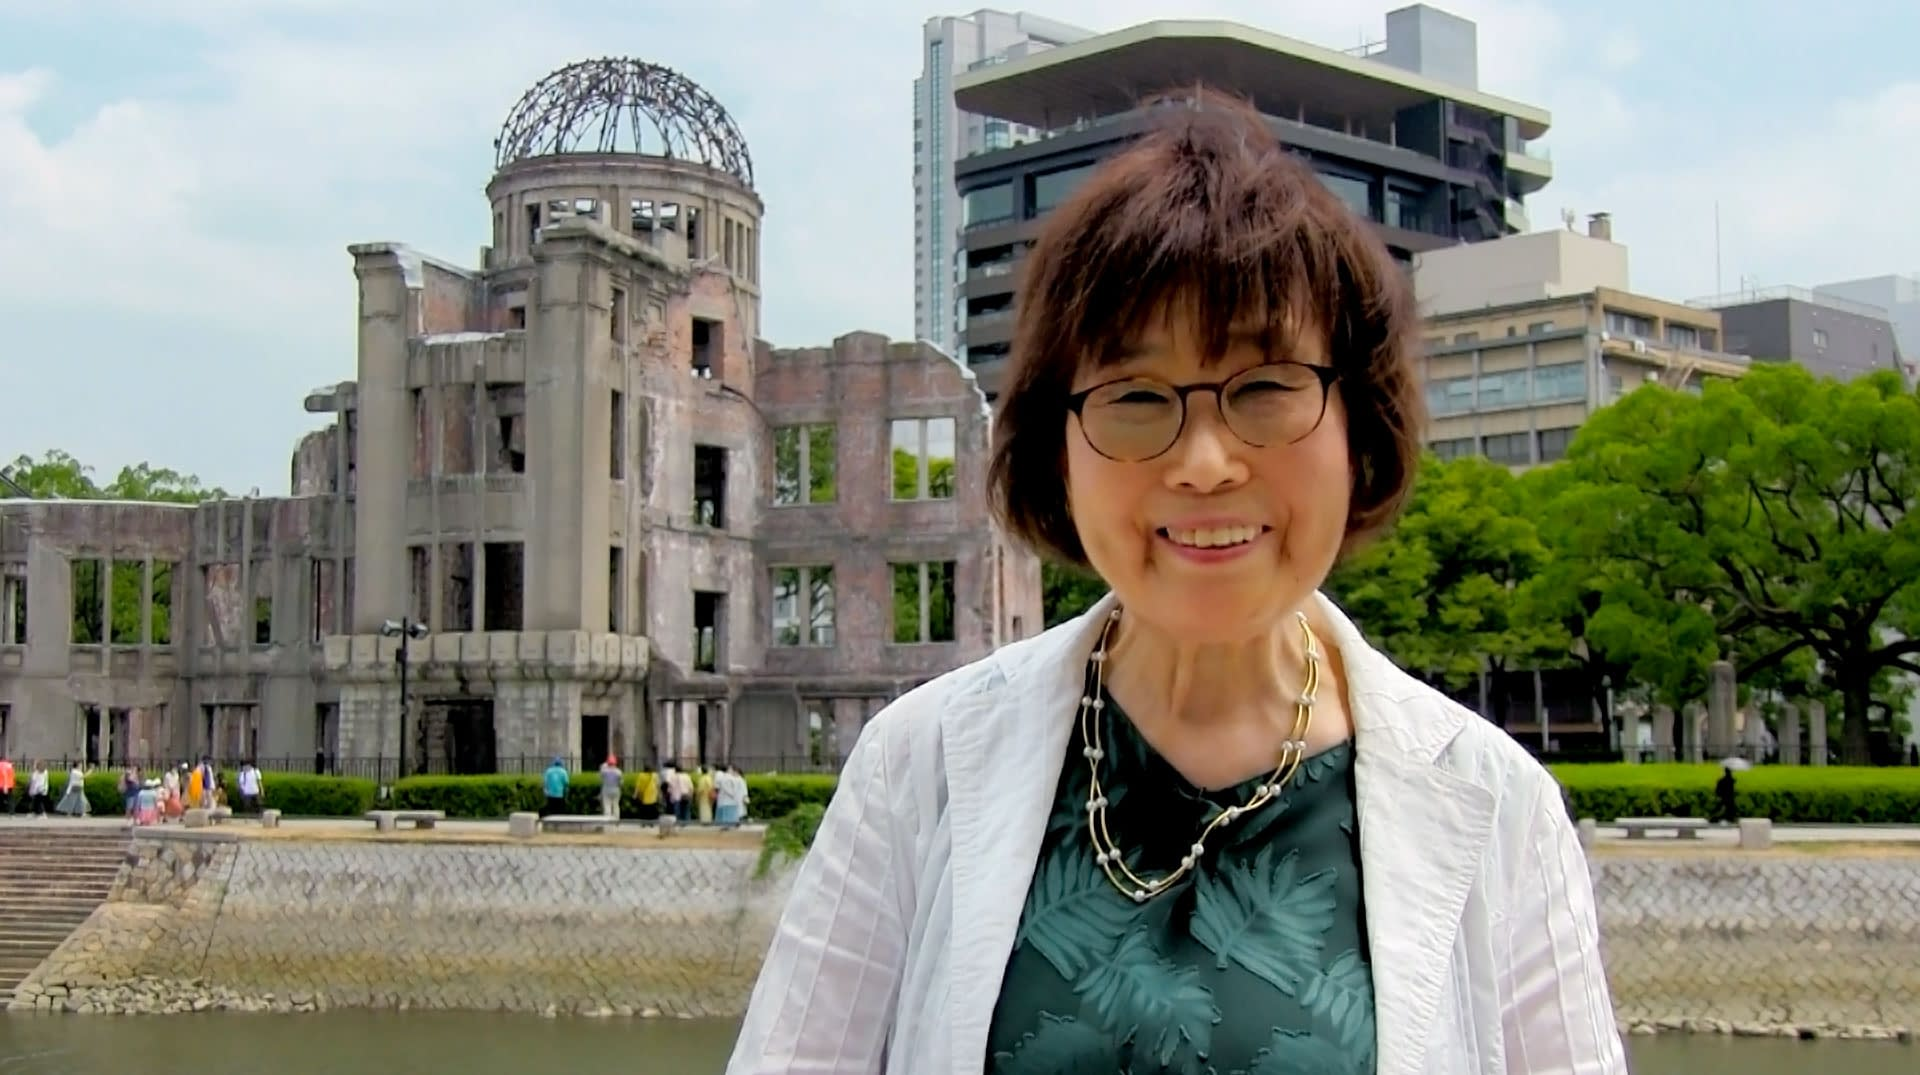 Keiko Ogura in front of the A-bomb Dome